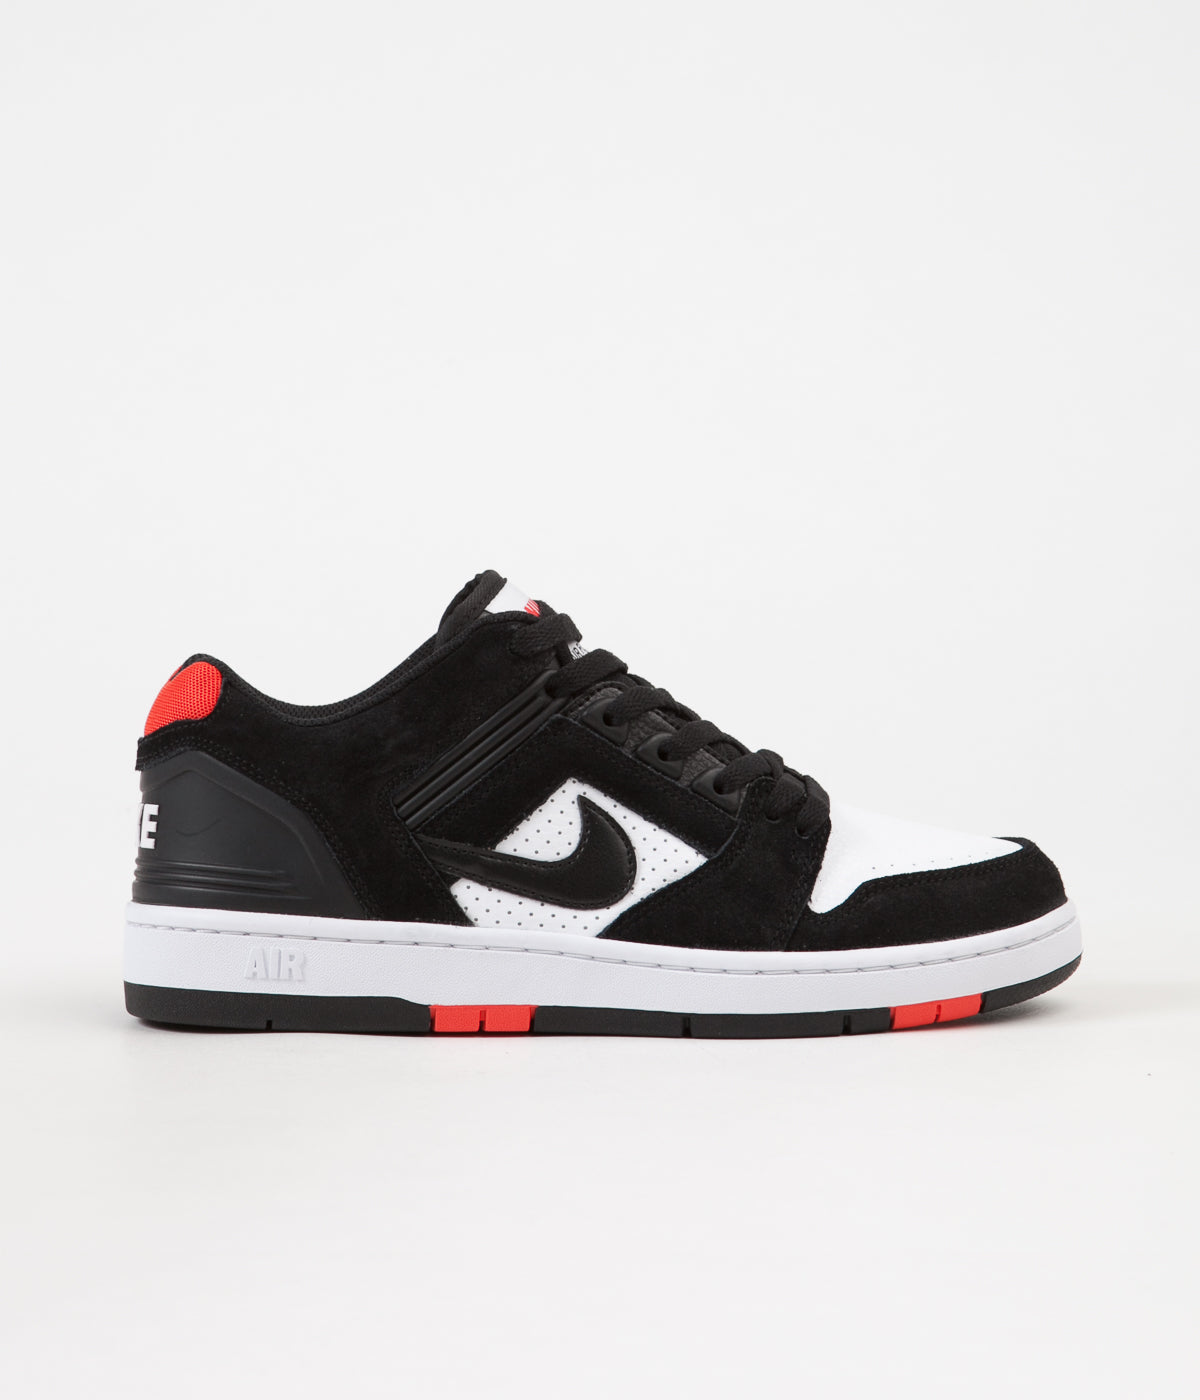 purchase cheap c70b3 6ad89 Nike SB Air Force II Low Shoes - Black  Black - White - Habanero Red